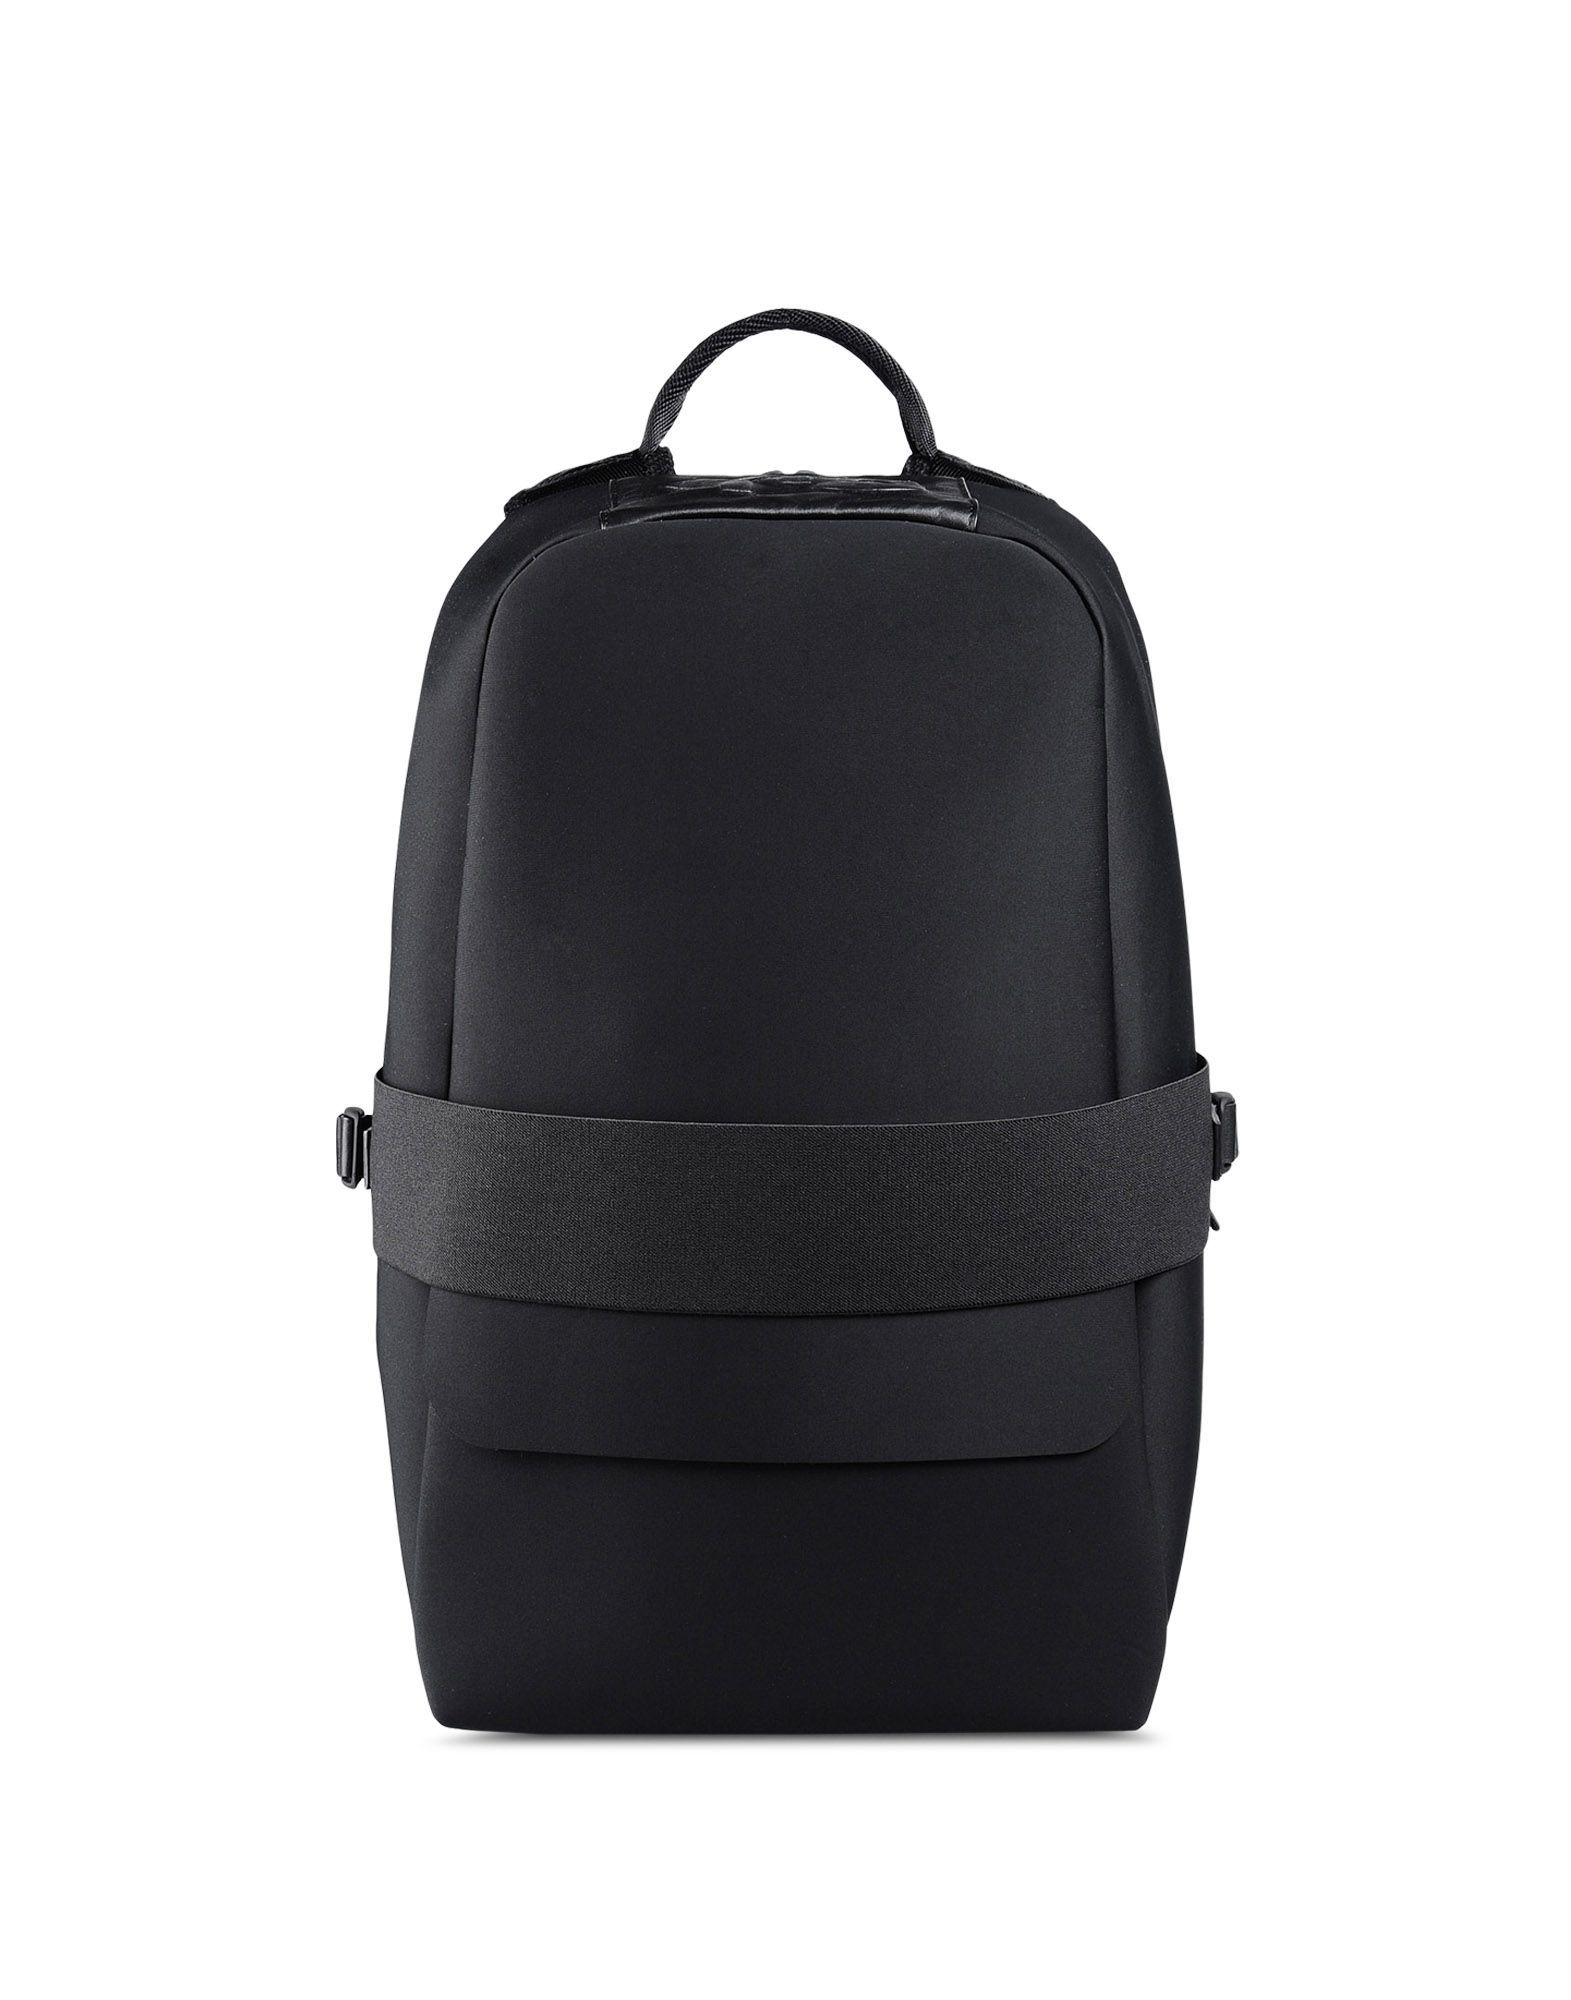 baeb6f61c82 Y-3 qasa, backpack, black, fabric, wrap, matte, minimal   bags ...